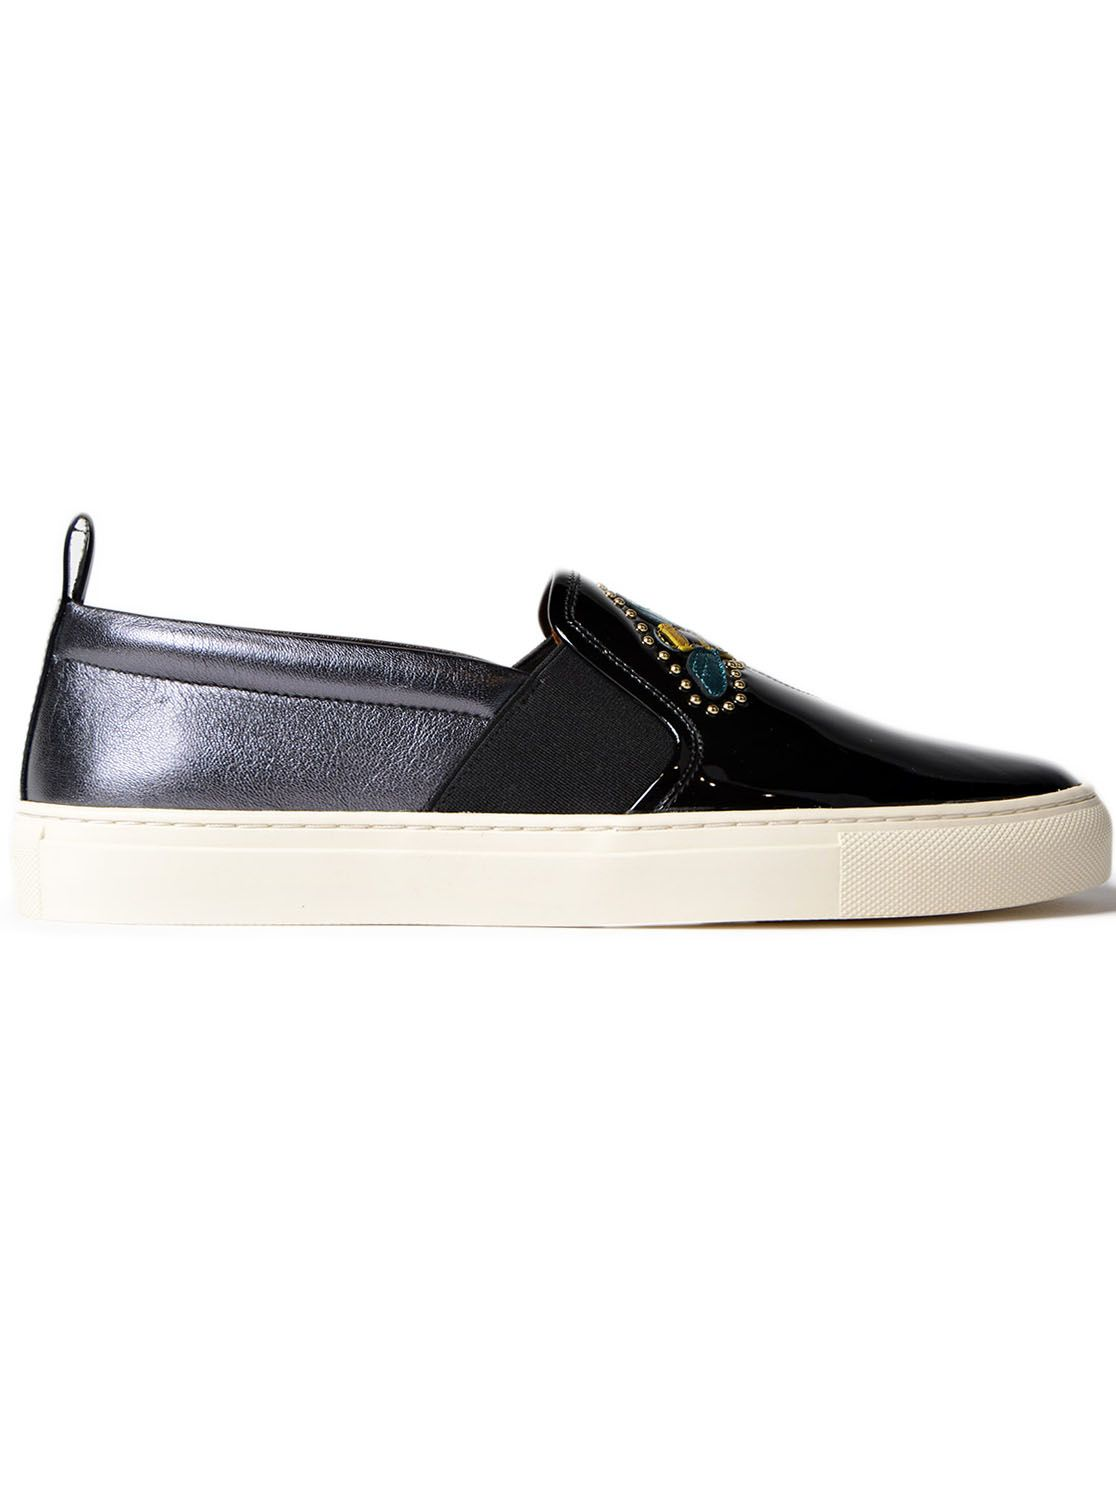 Bally Embroidered Slip-on Sneakers